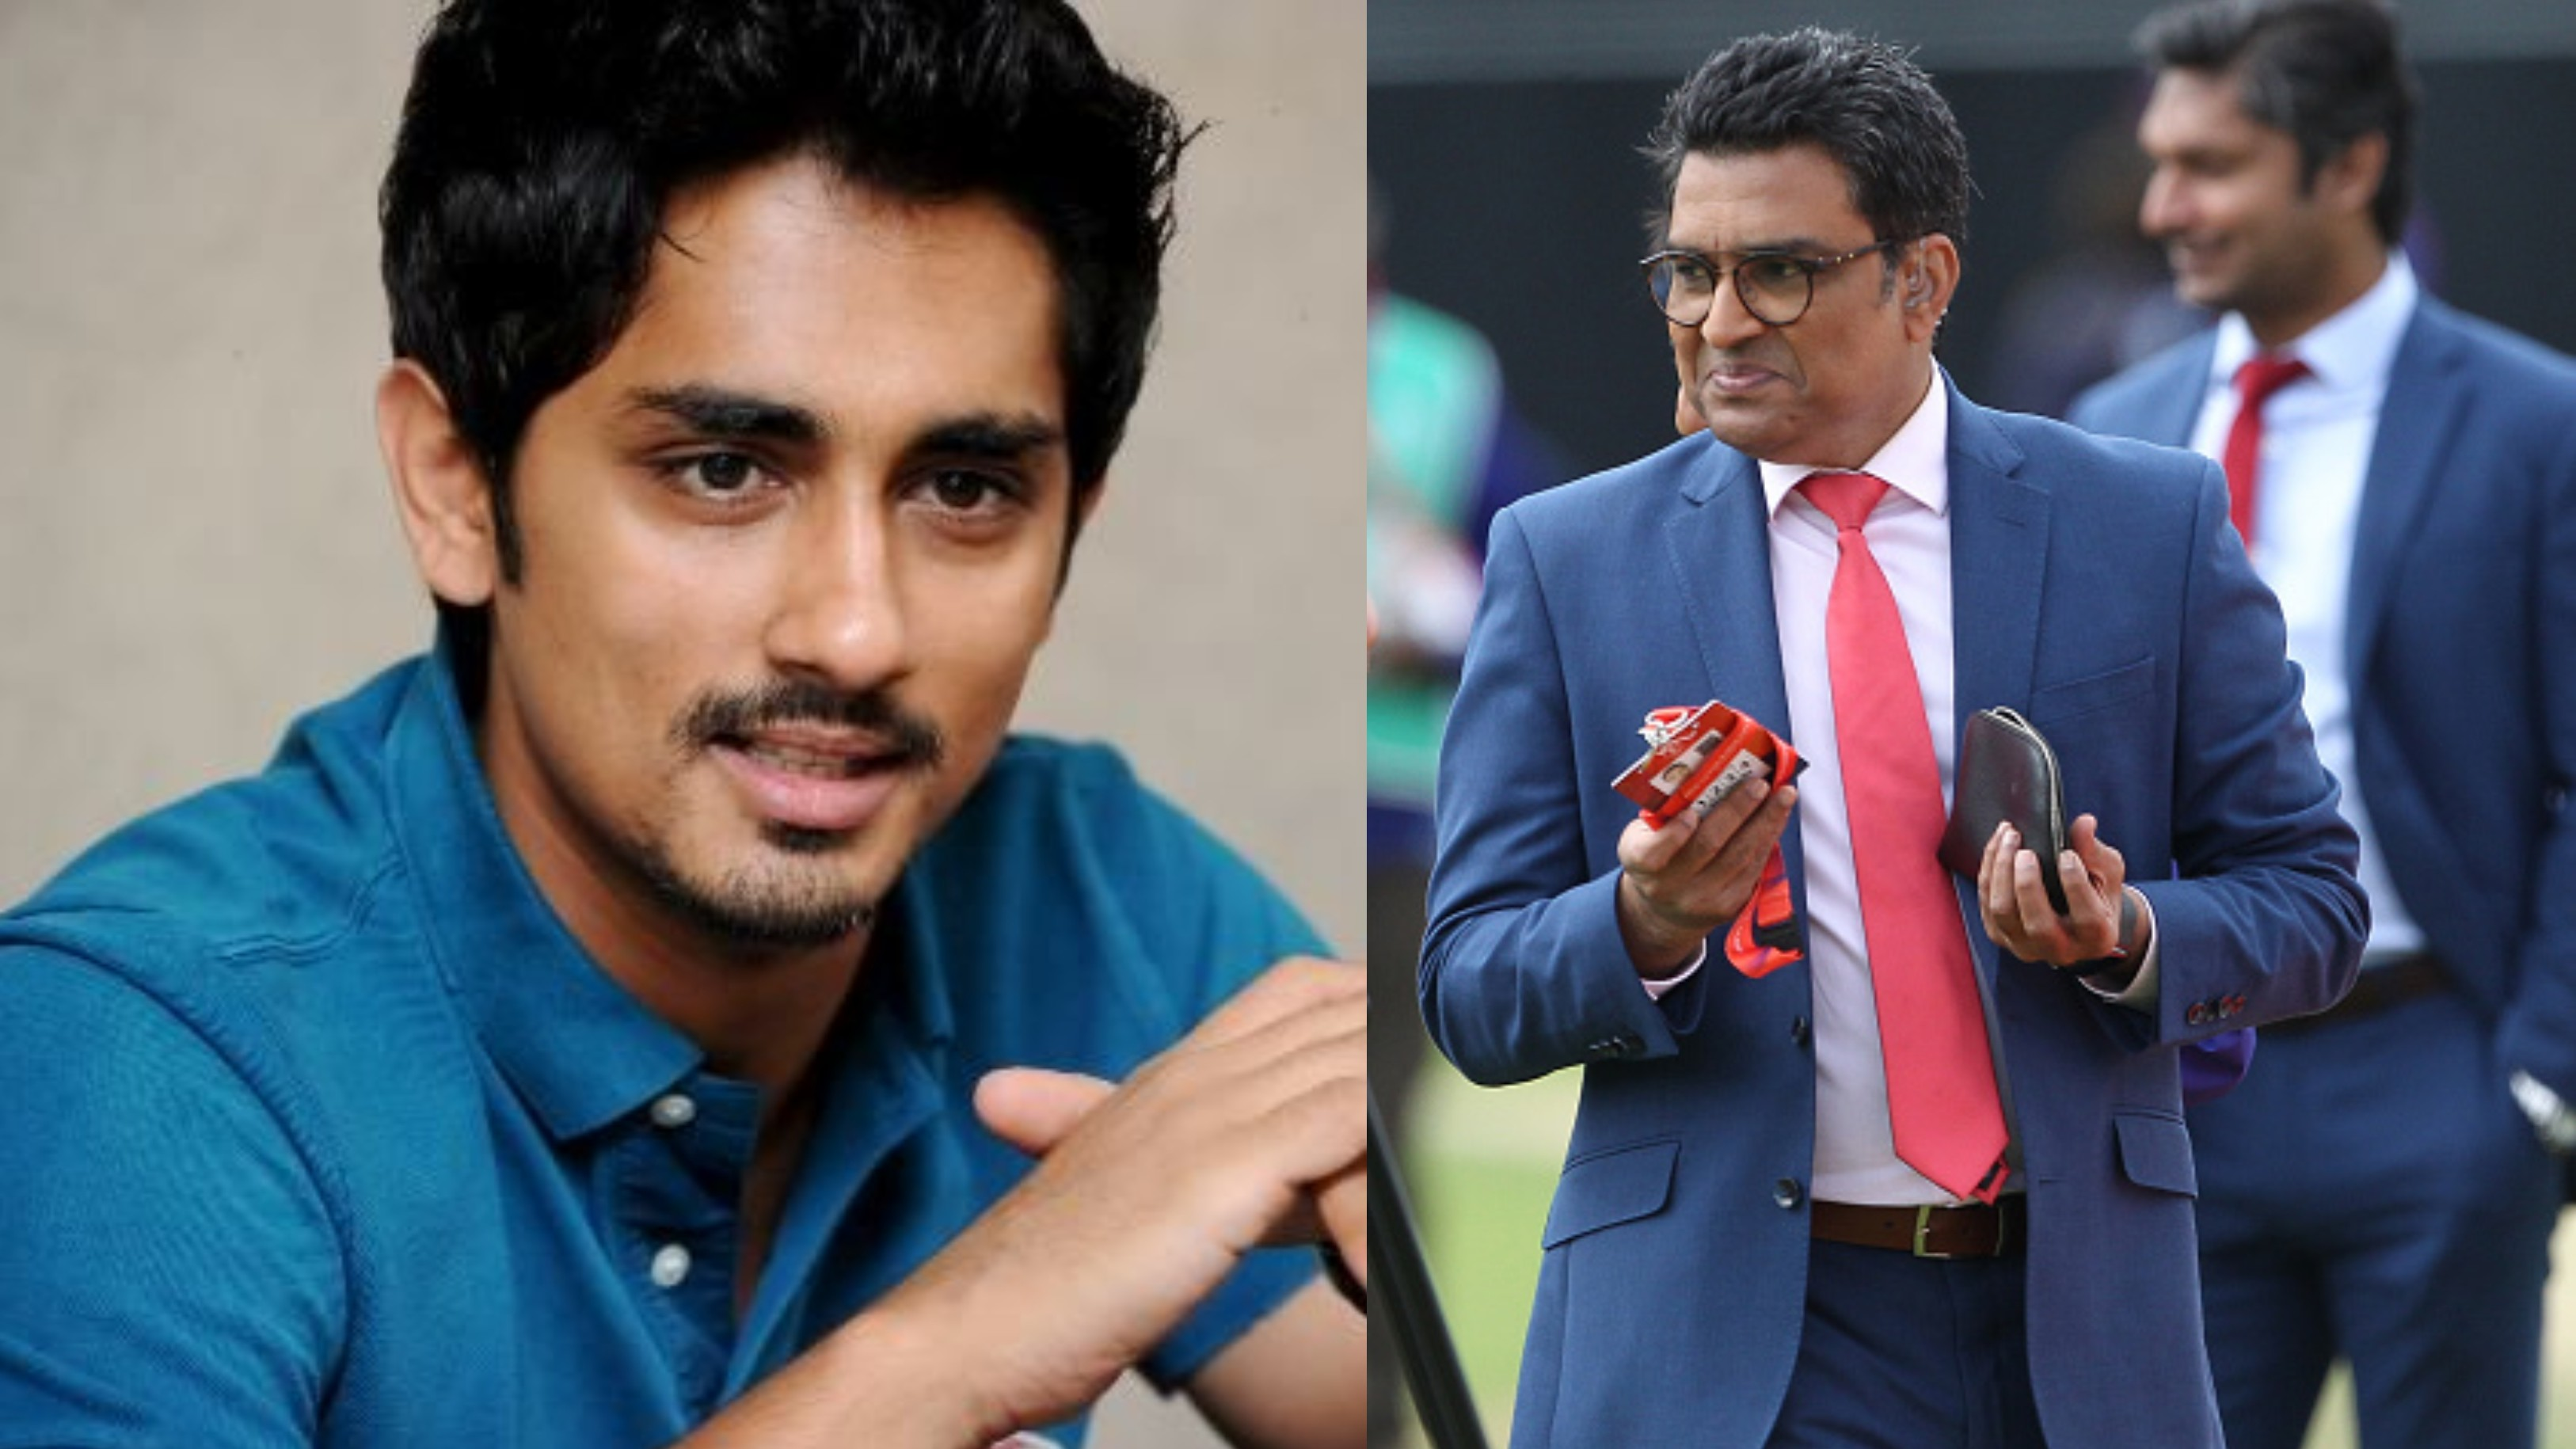 CWC 2019: Siddharth calls Sanjay Manjrekar an 'idiot' over his 'terrible' and 'crass' commentary